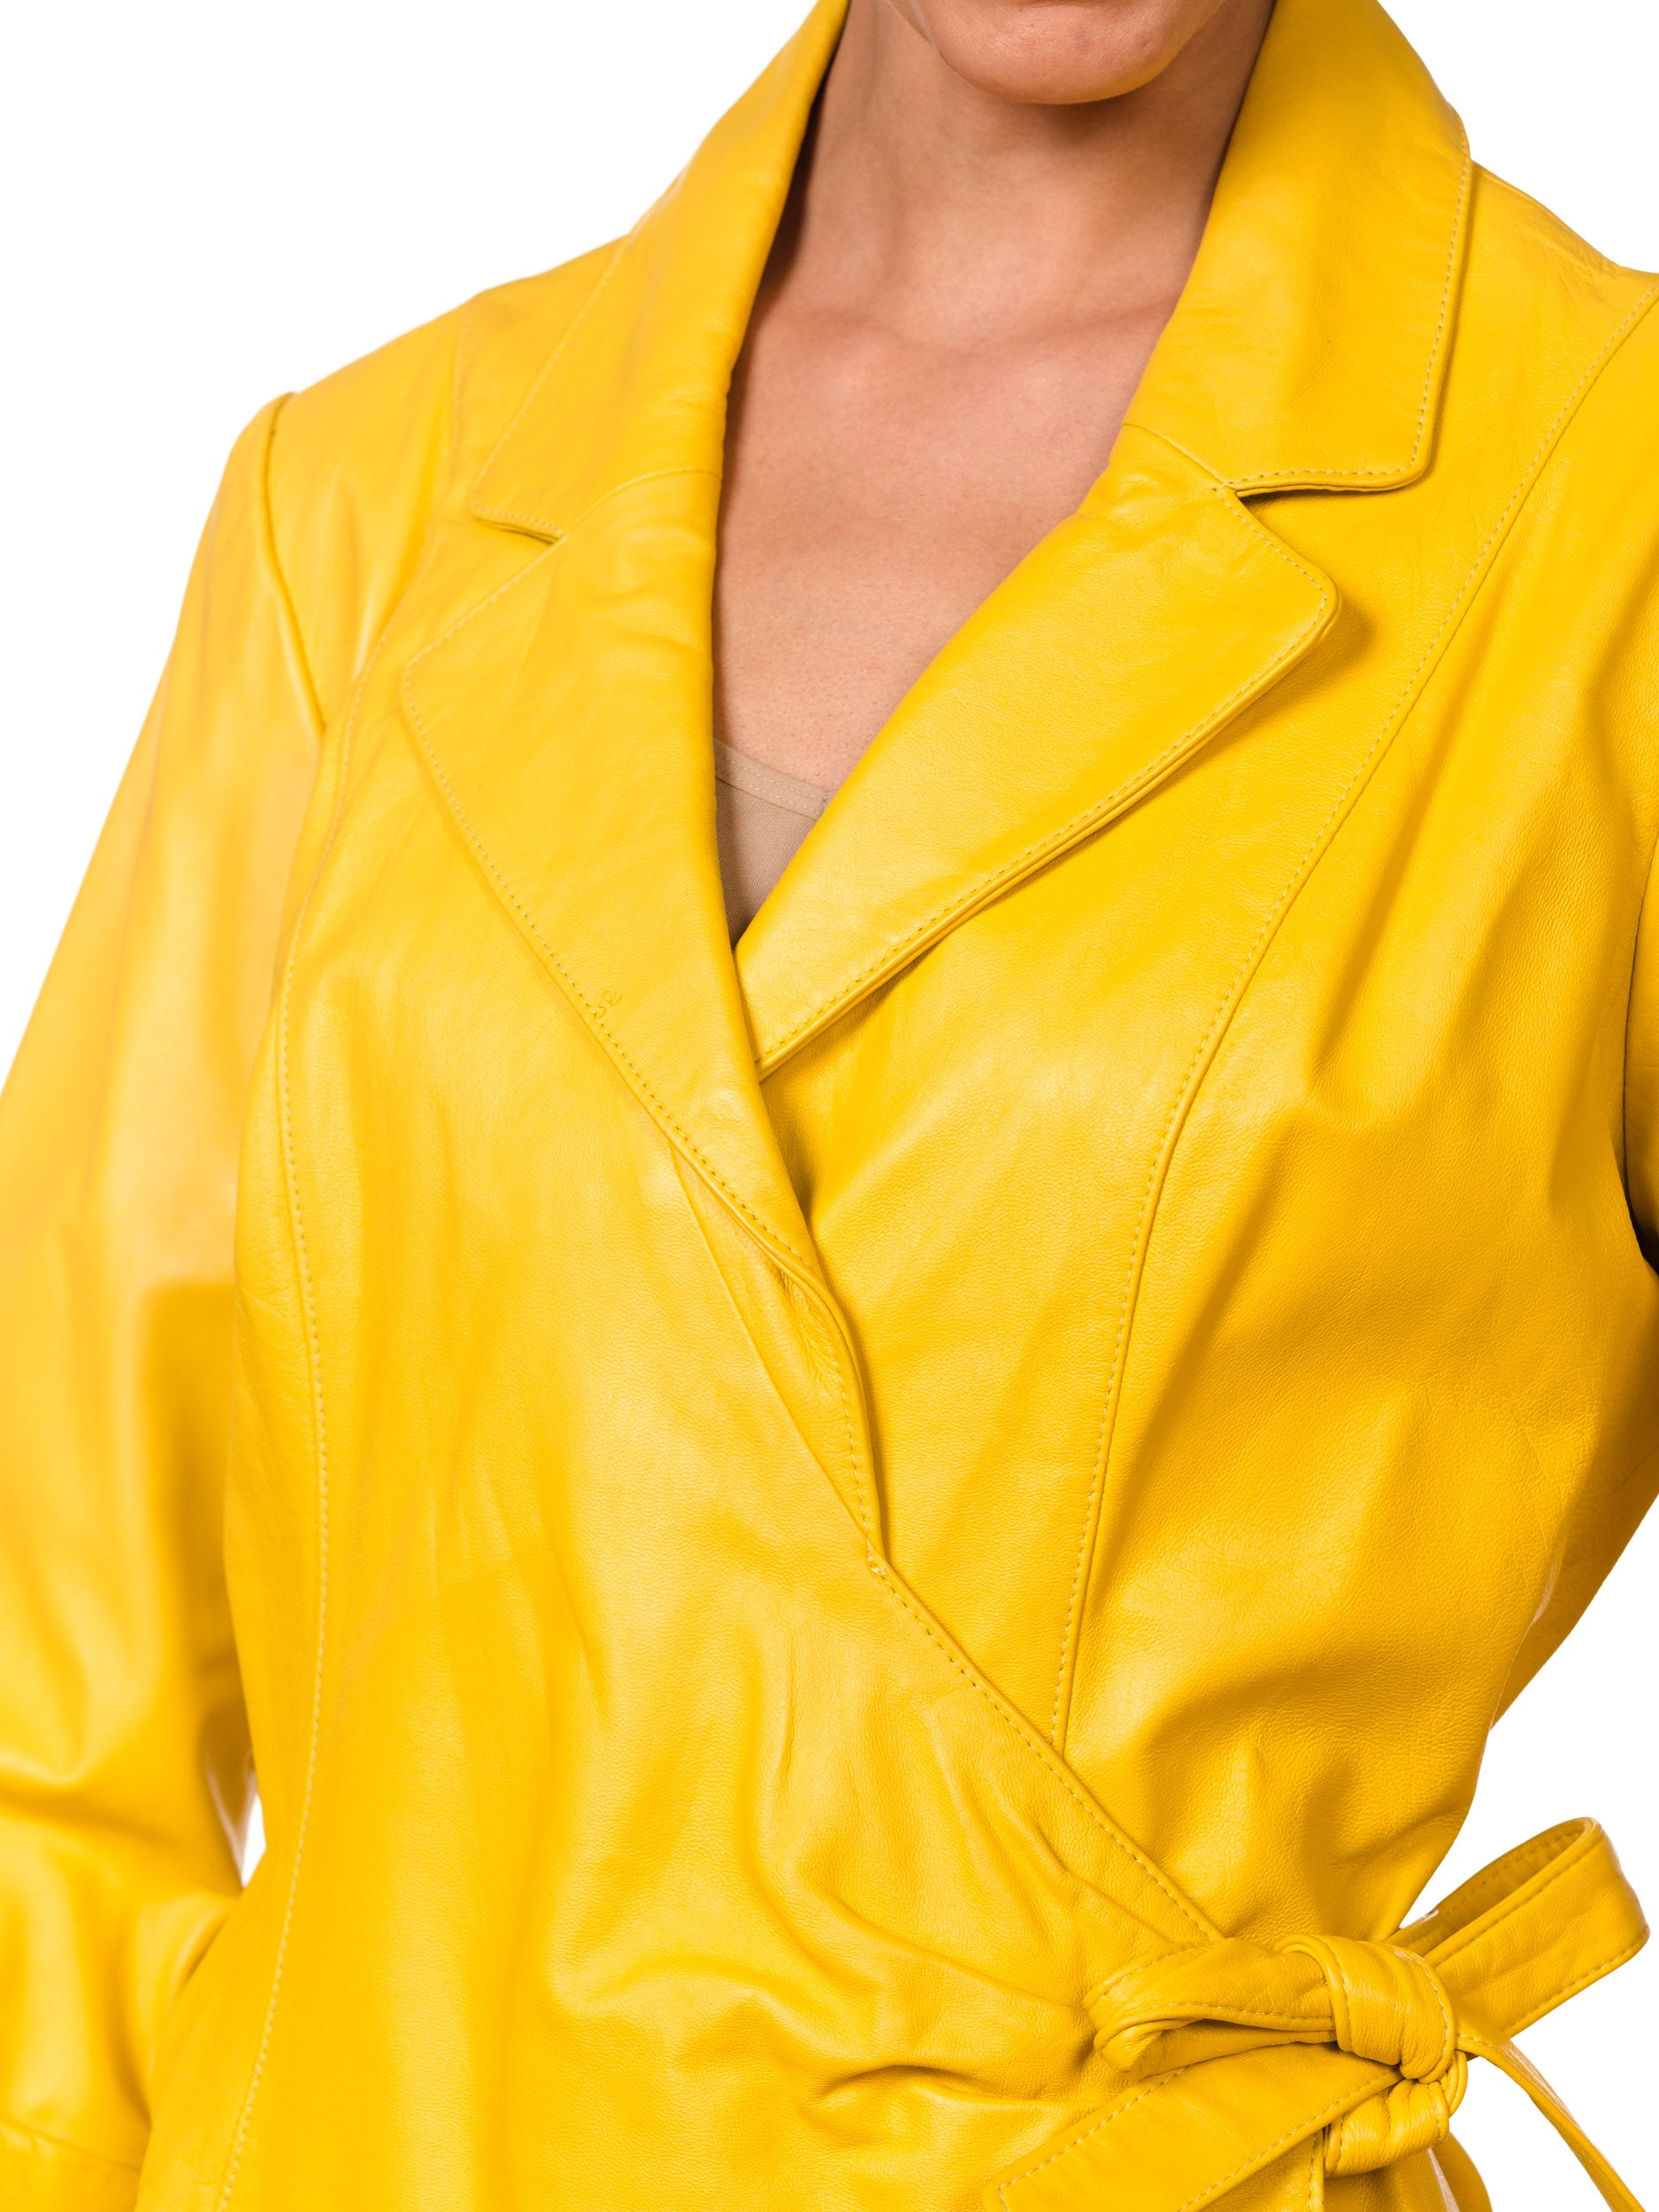 Yellow Leather JAcket with tie front detail